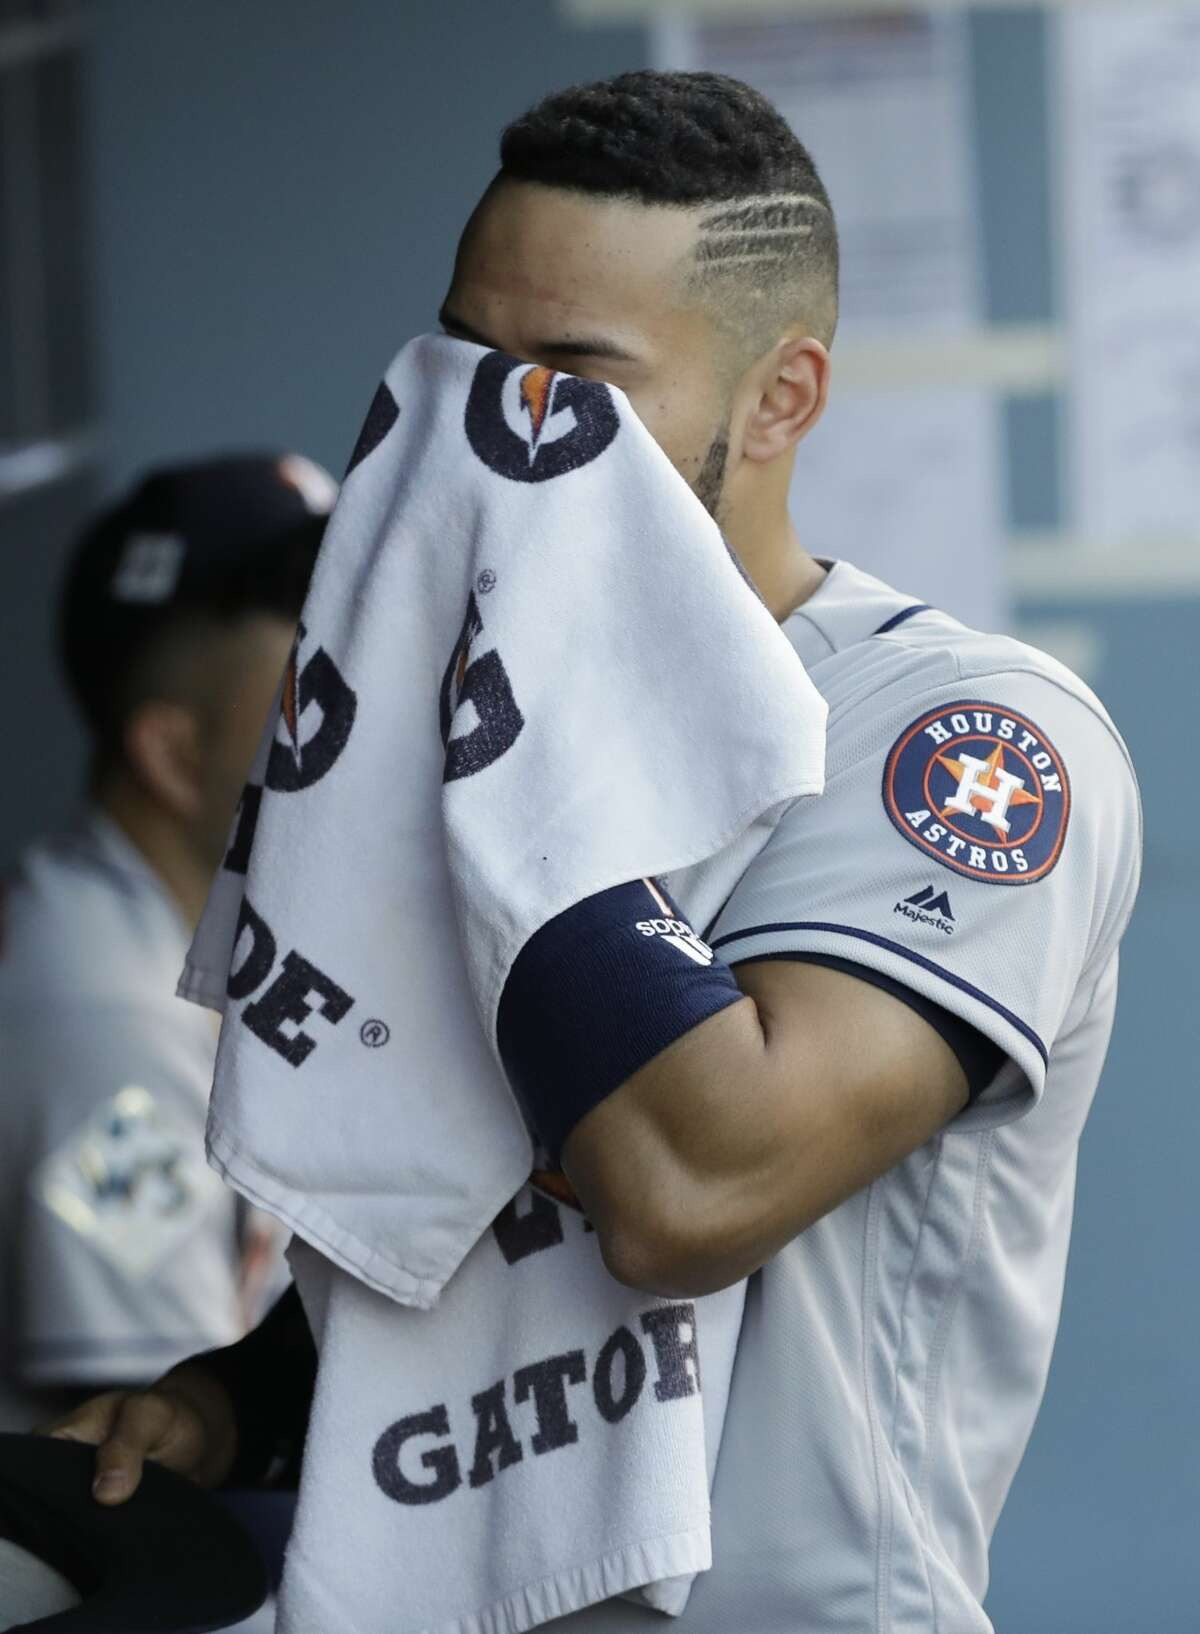 Houston Astros' Carlos Correa wipes his face before Game 1 of baseball's World Series against the Los Angeles Dodgers Tuesday, Oct. 24, 2017, in Los Angeles. Game time temperature in near 100 degrees. (AP Photo/David J. Phillip)